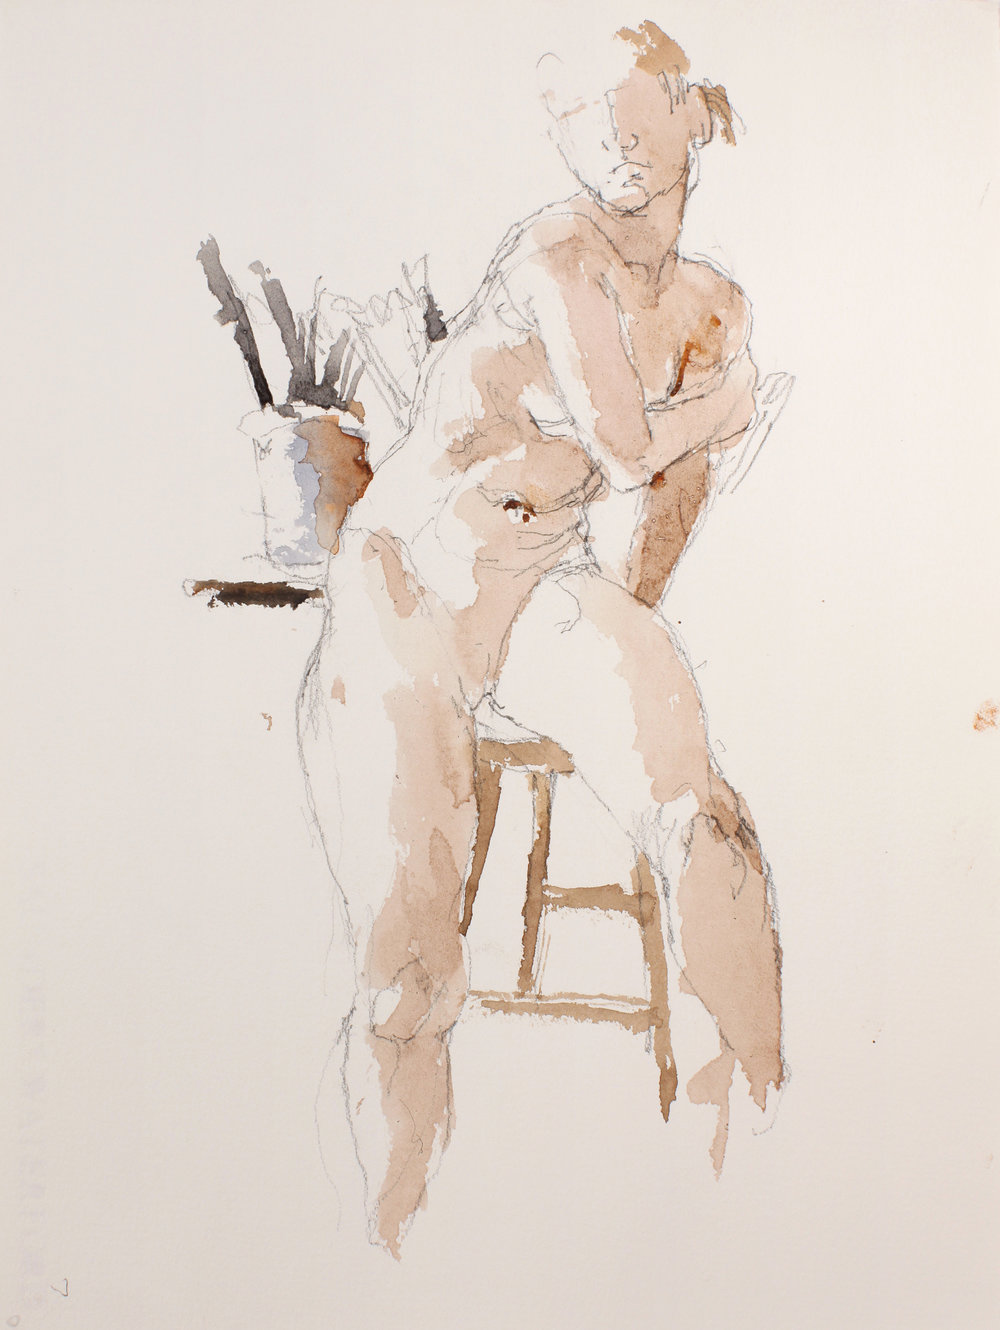 2008_Nude_Seated_on_Chair_with_Container_of_Brushes_watercolour_and_pencil_on_paper_15x11in_WPF532.jpg